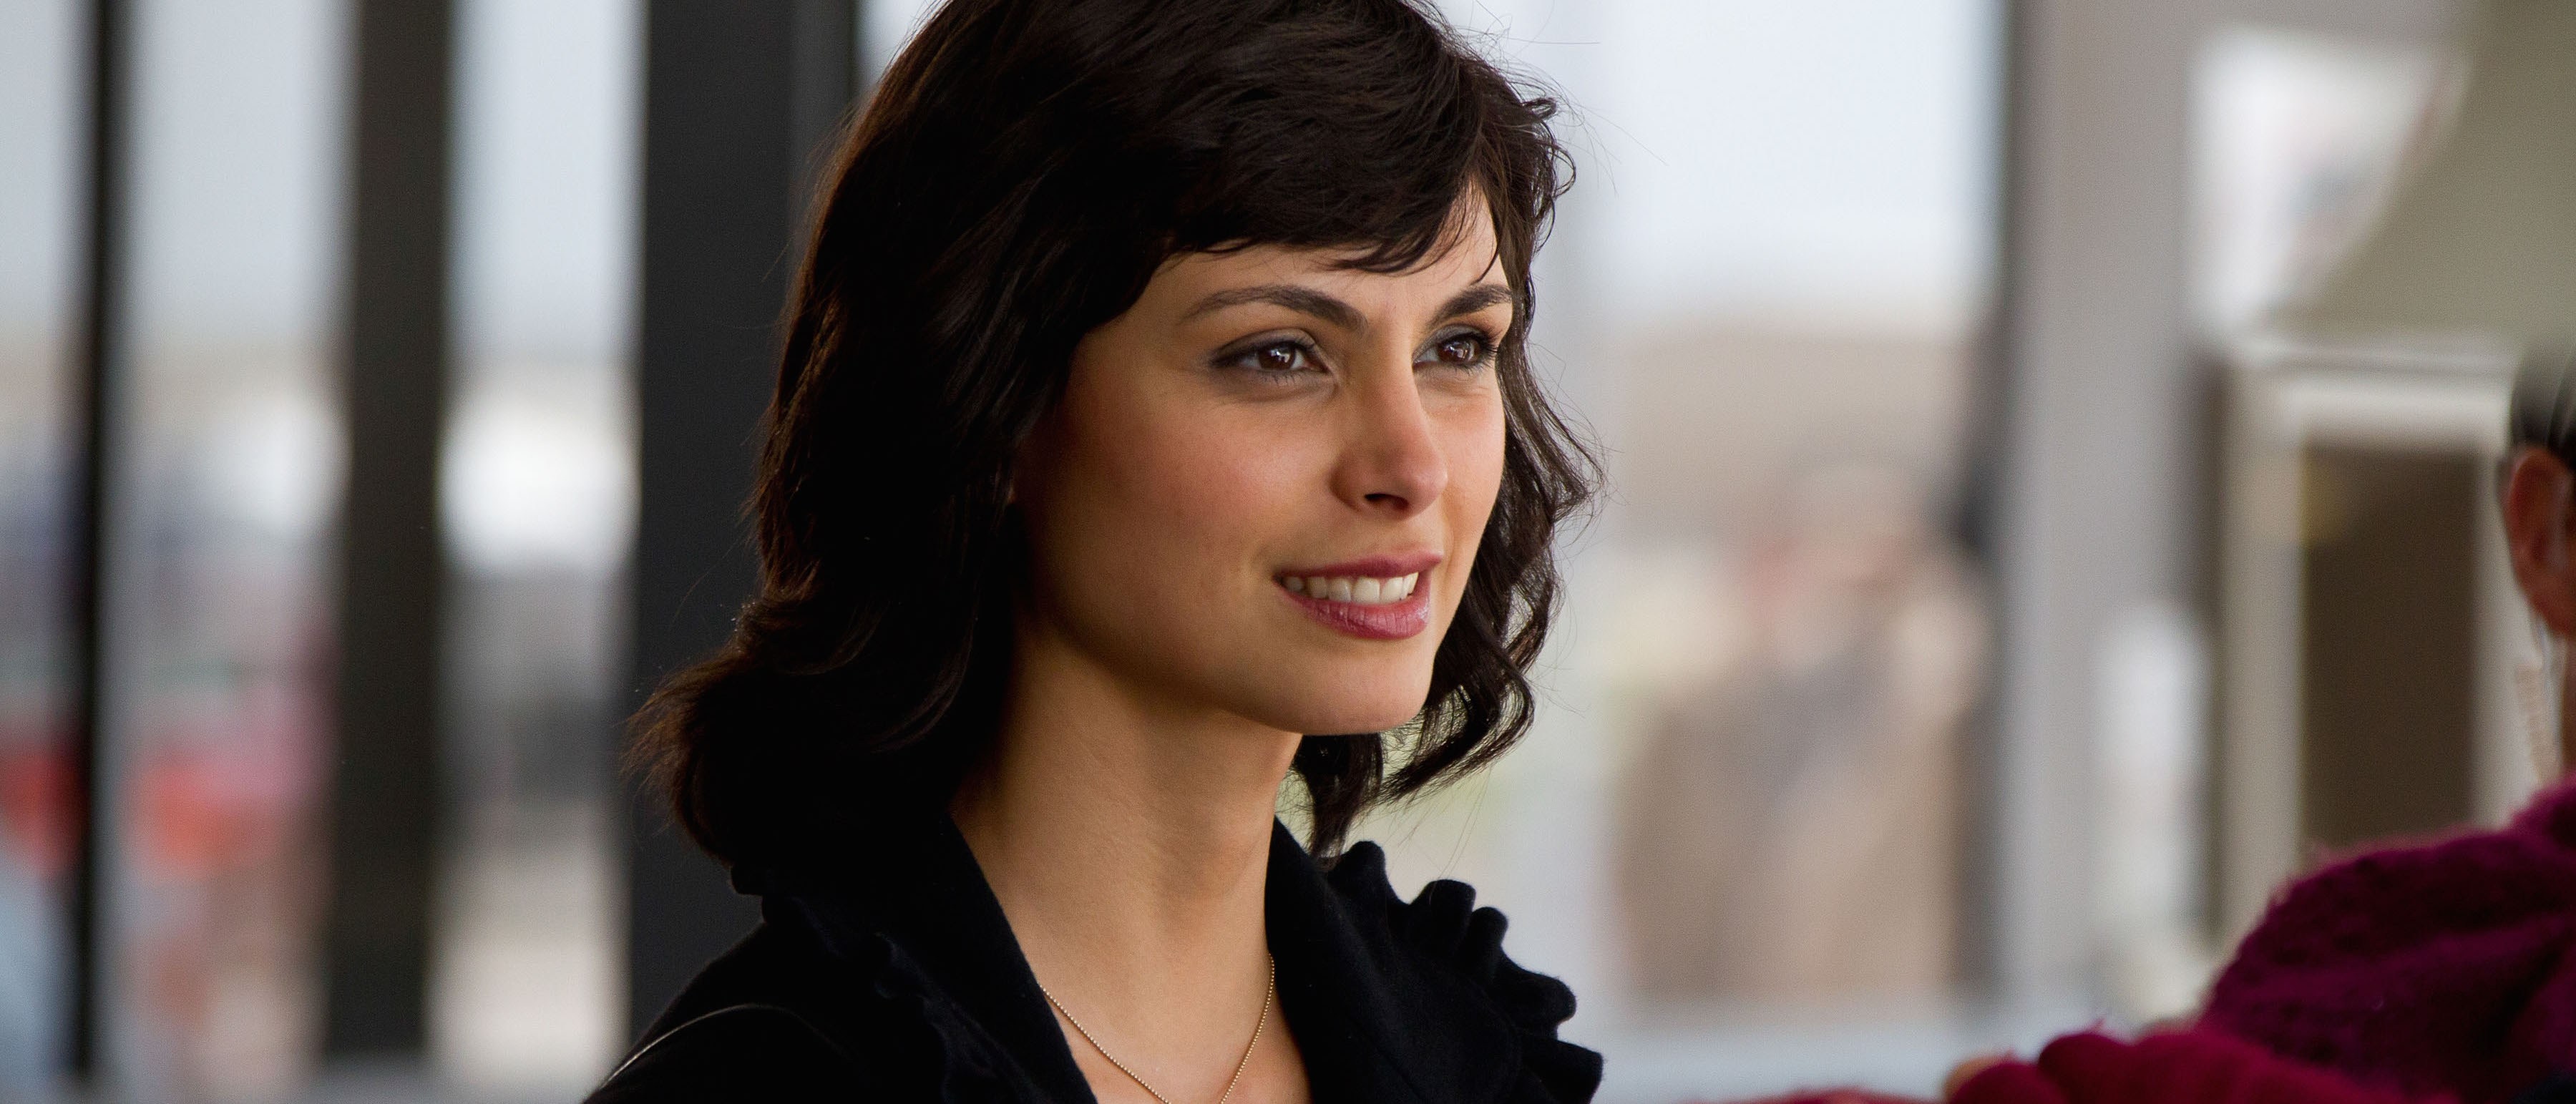 Morena Baccarin Full hd wallpapers